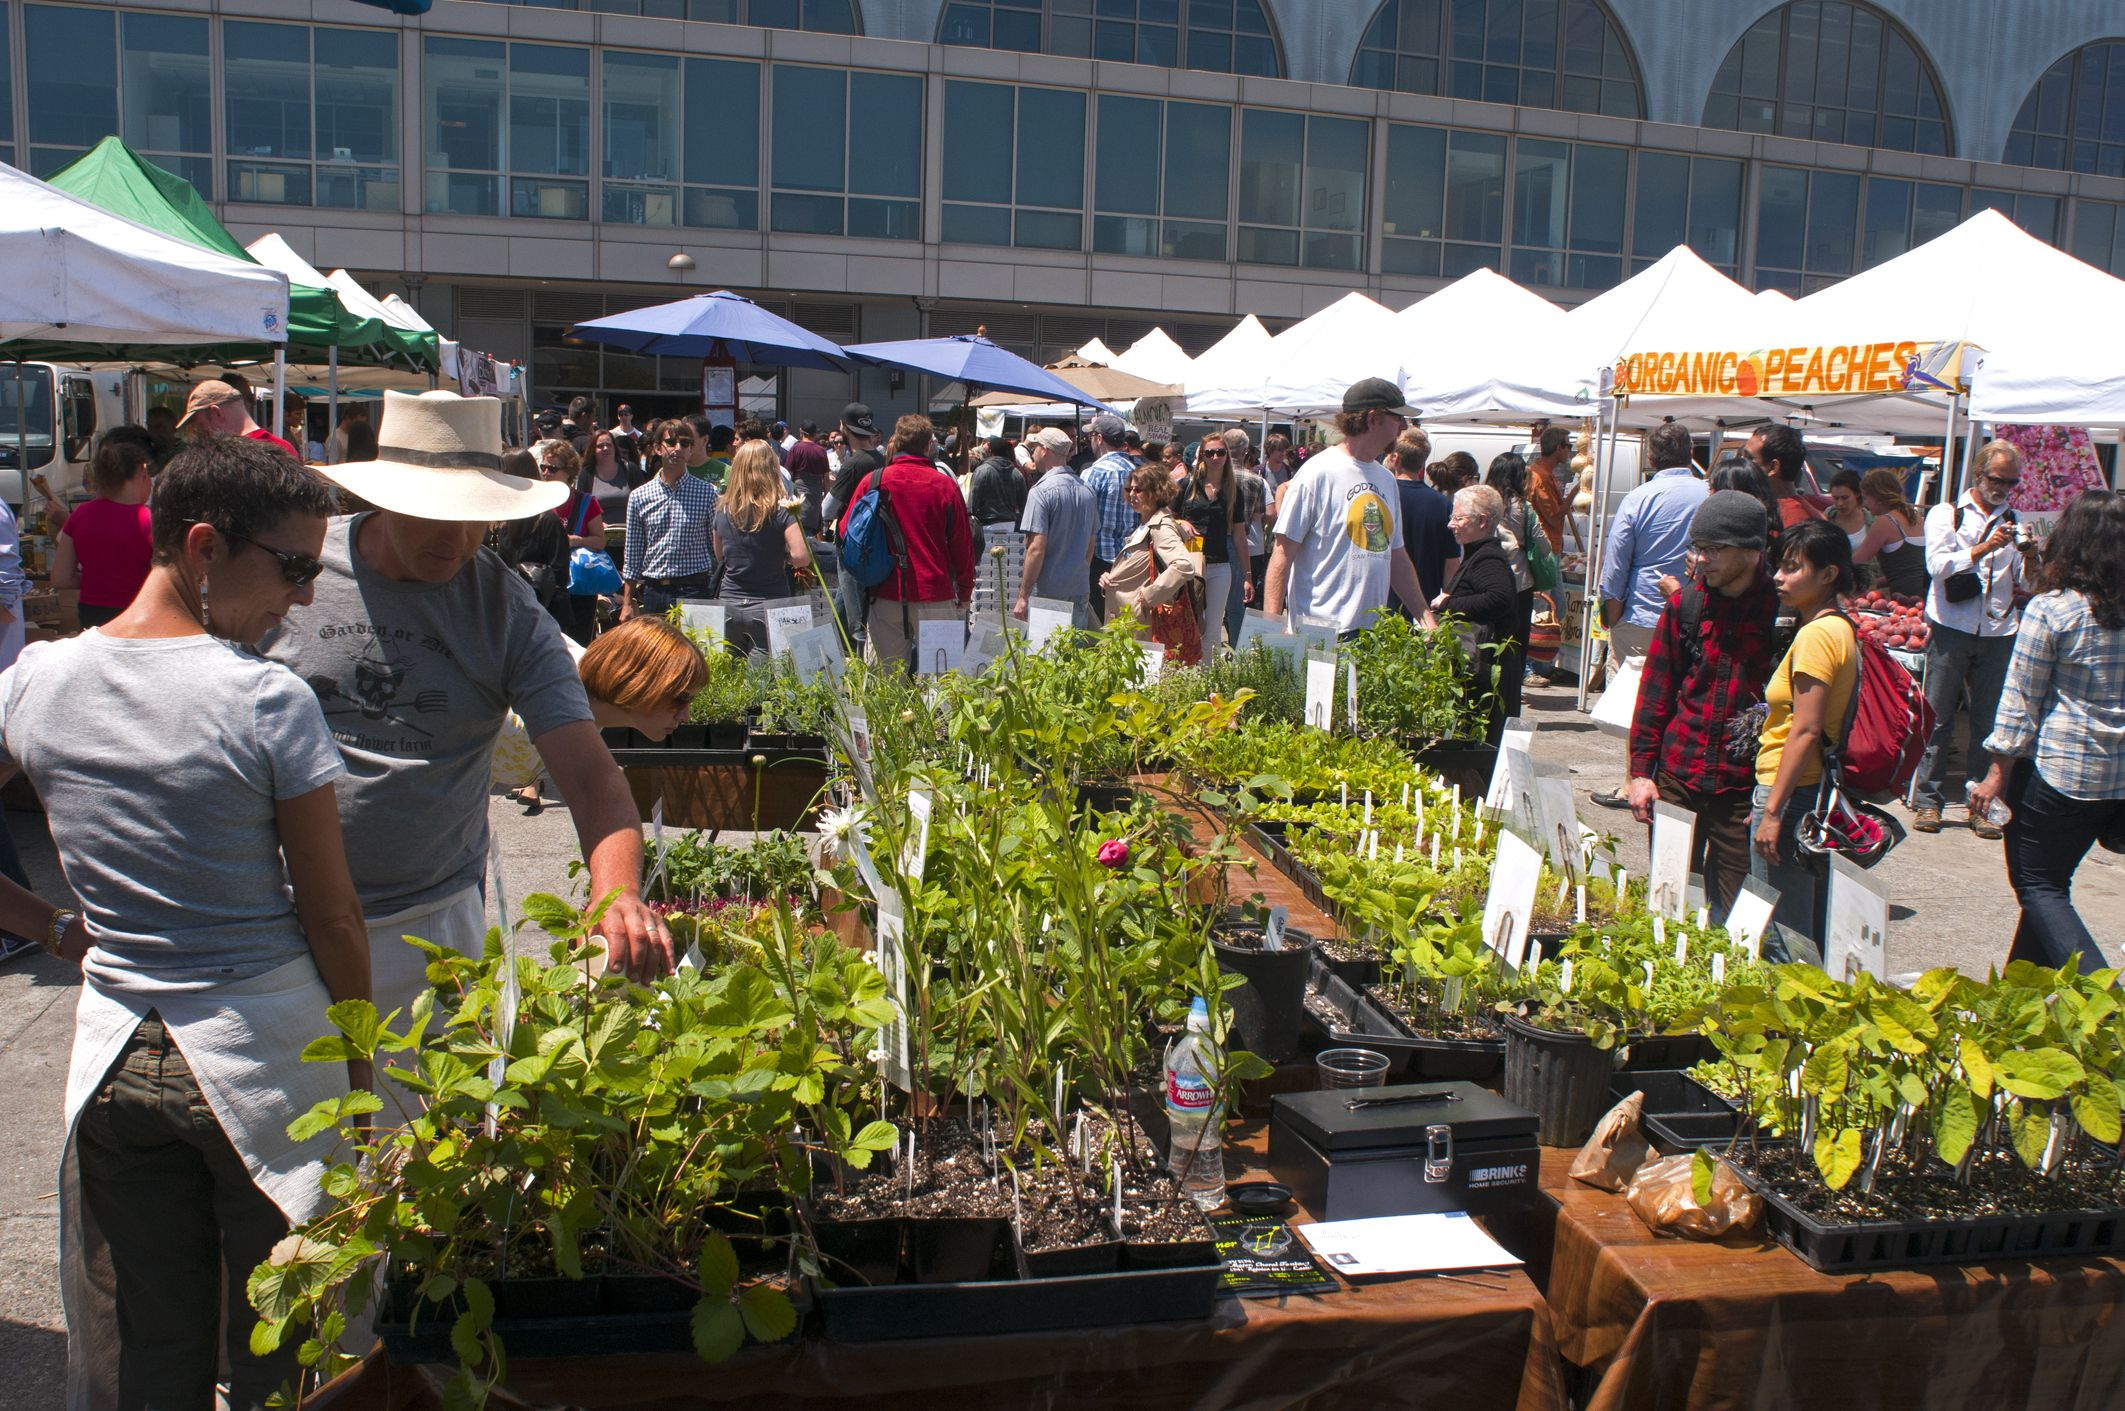 10 Crucial Tips For Shopping At Farmers Markets